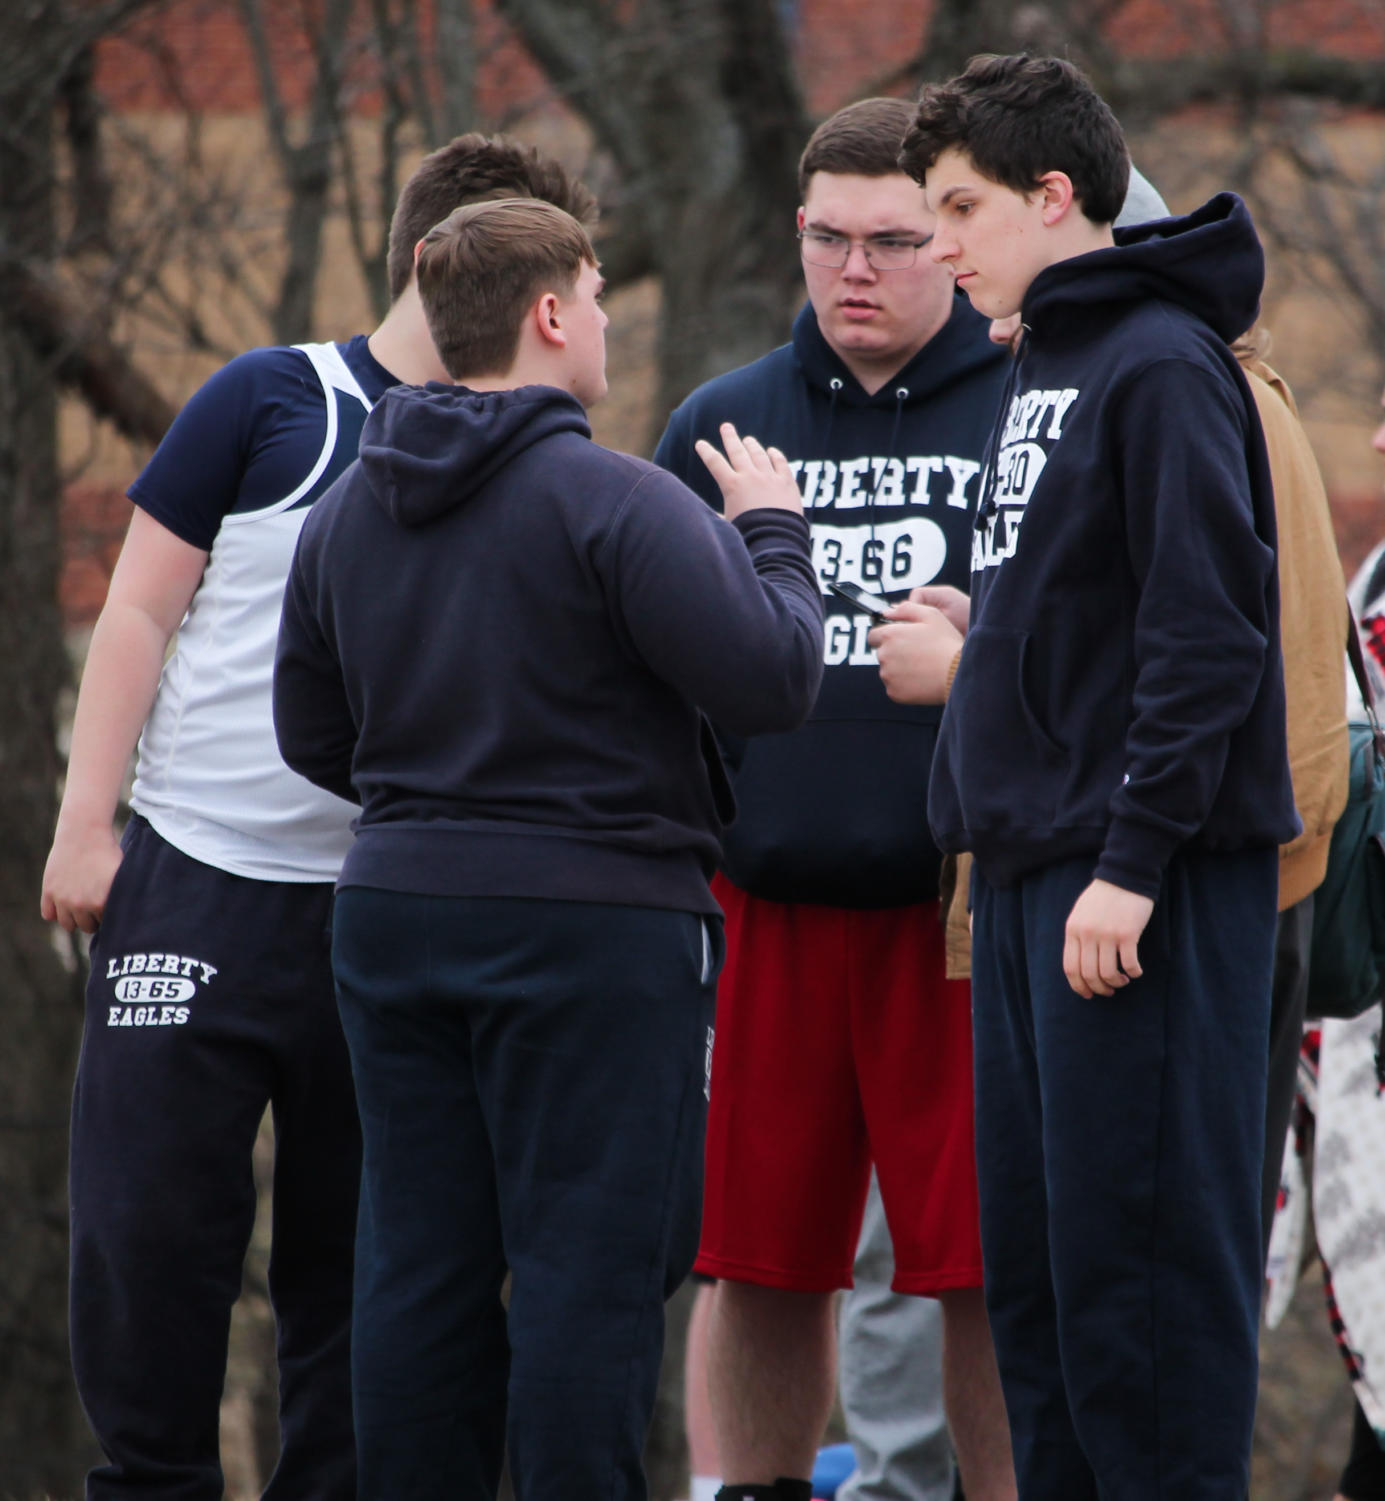 Blake Degner (middle) listens to newer throwers at a meet.